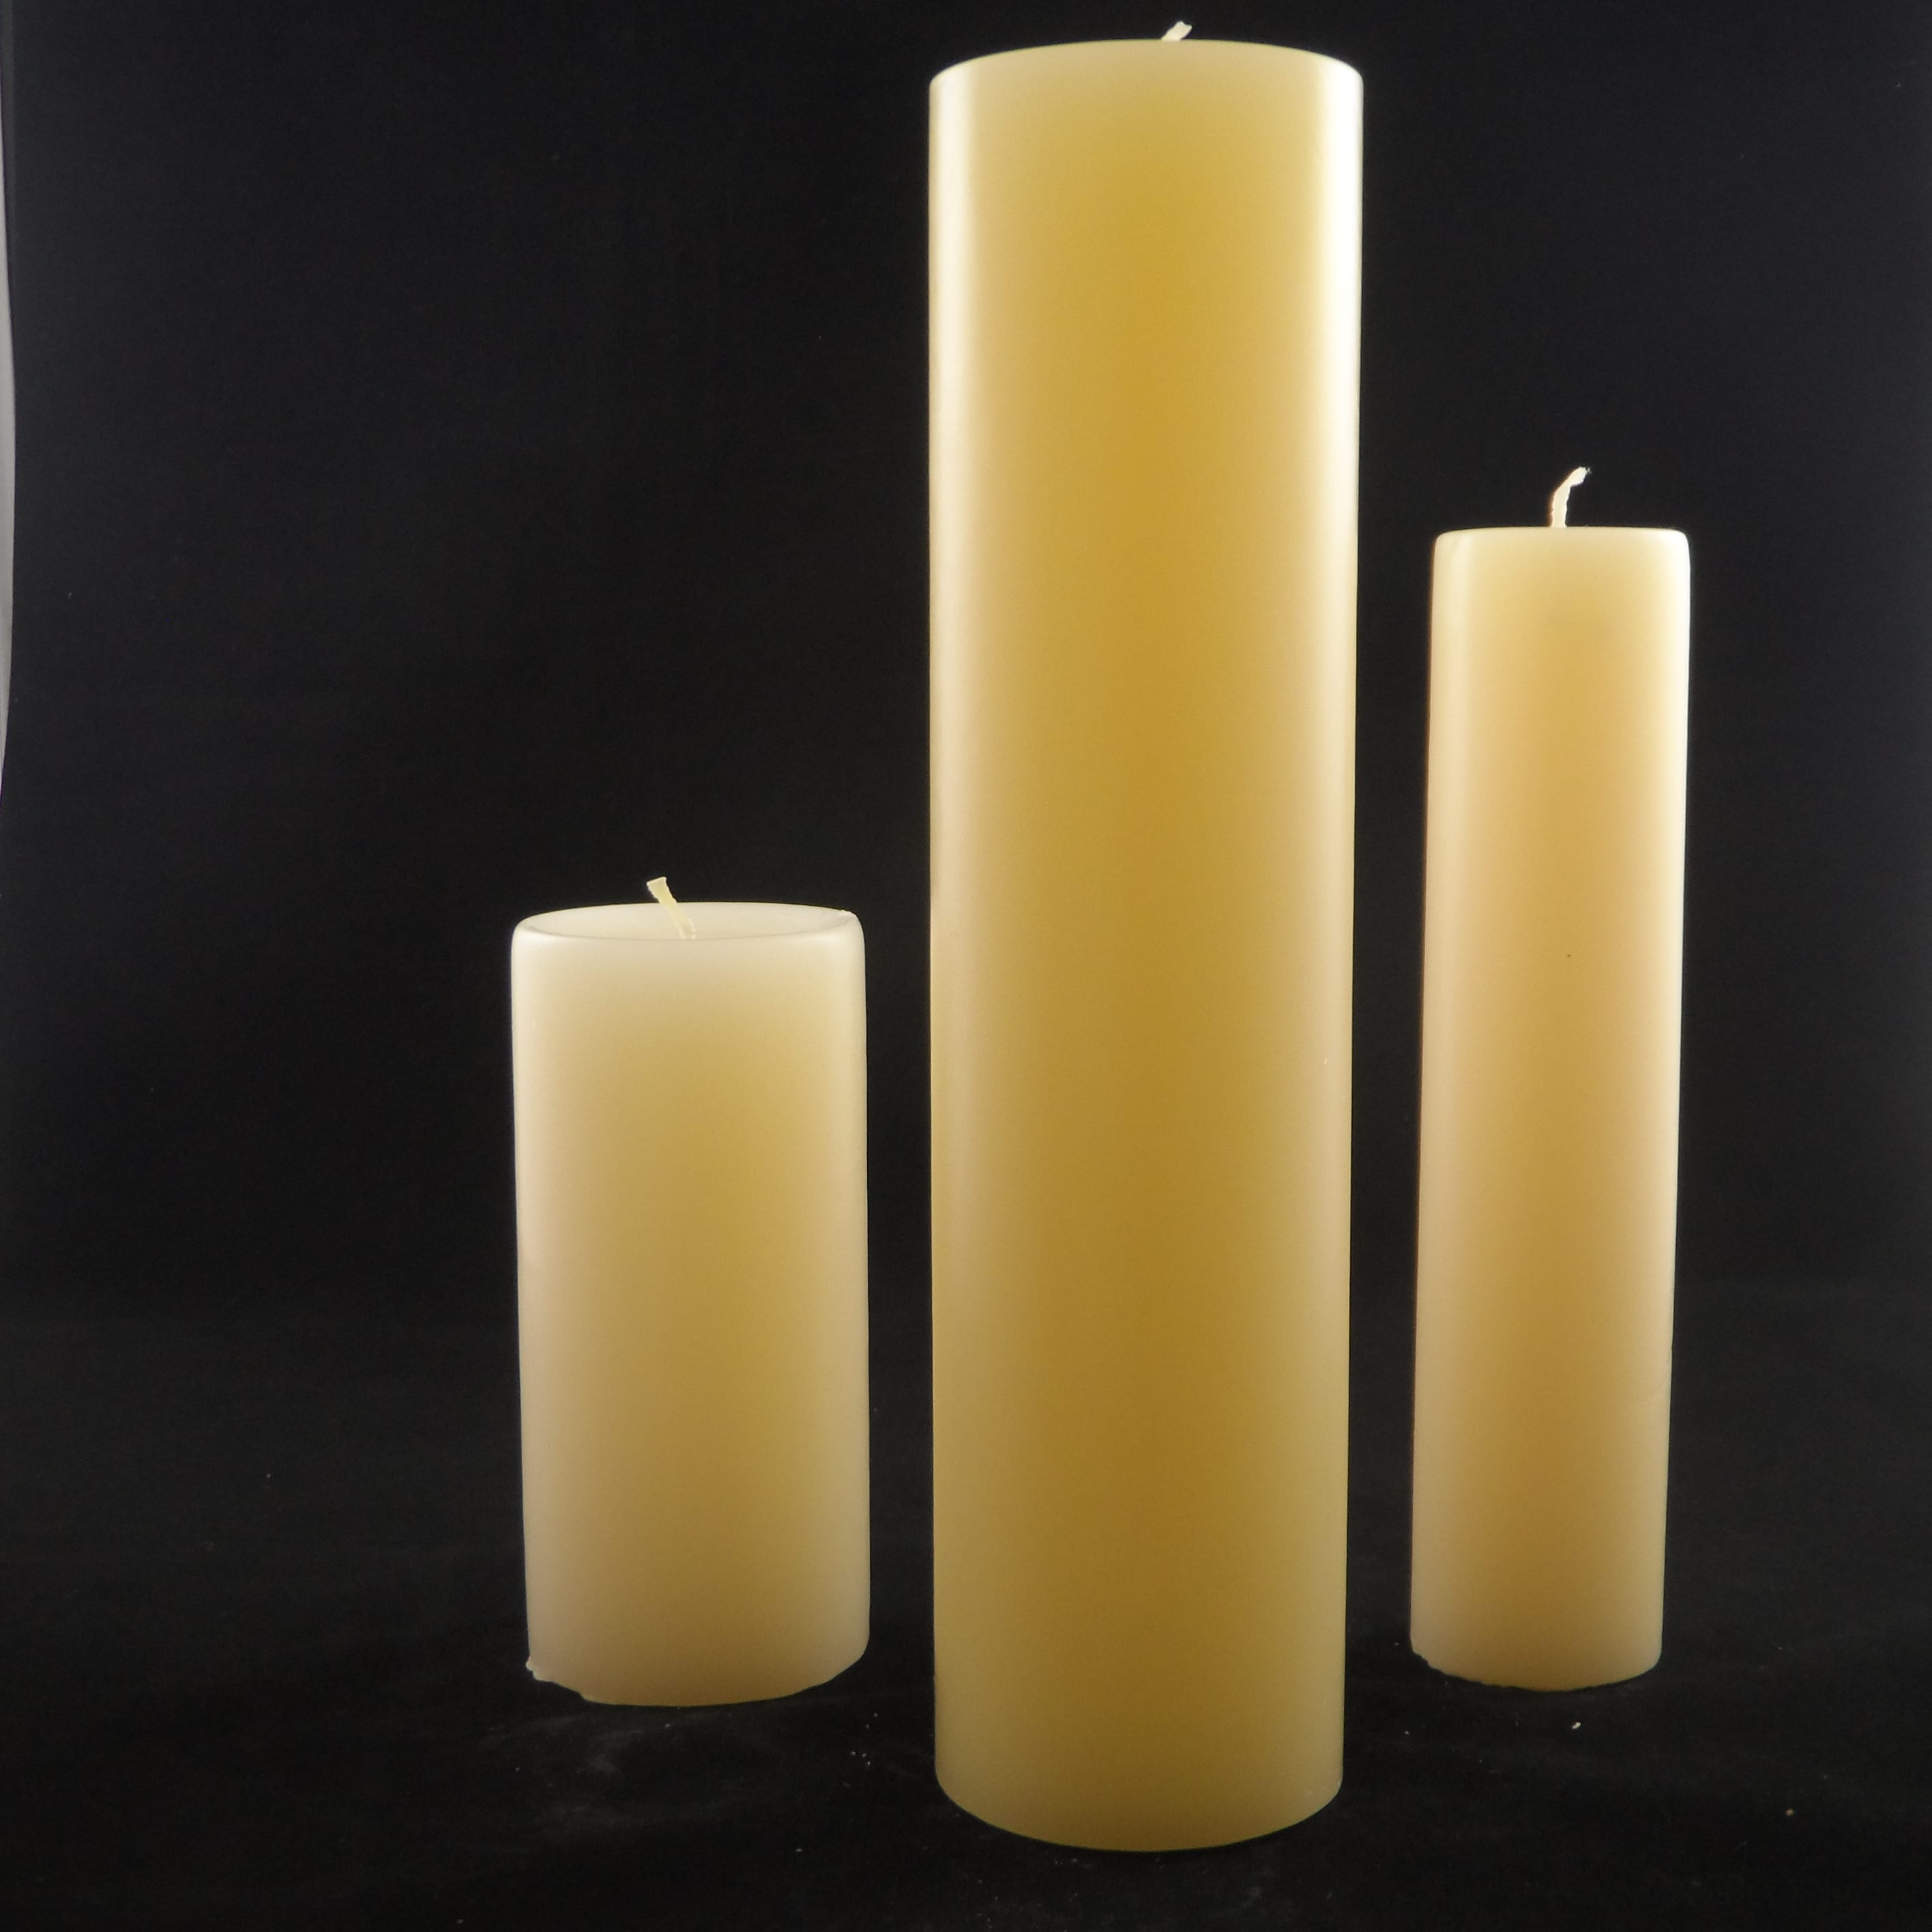 Festival large candle cream 70x280mm golden glow candles